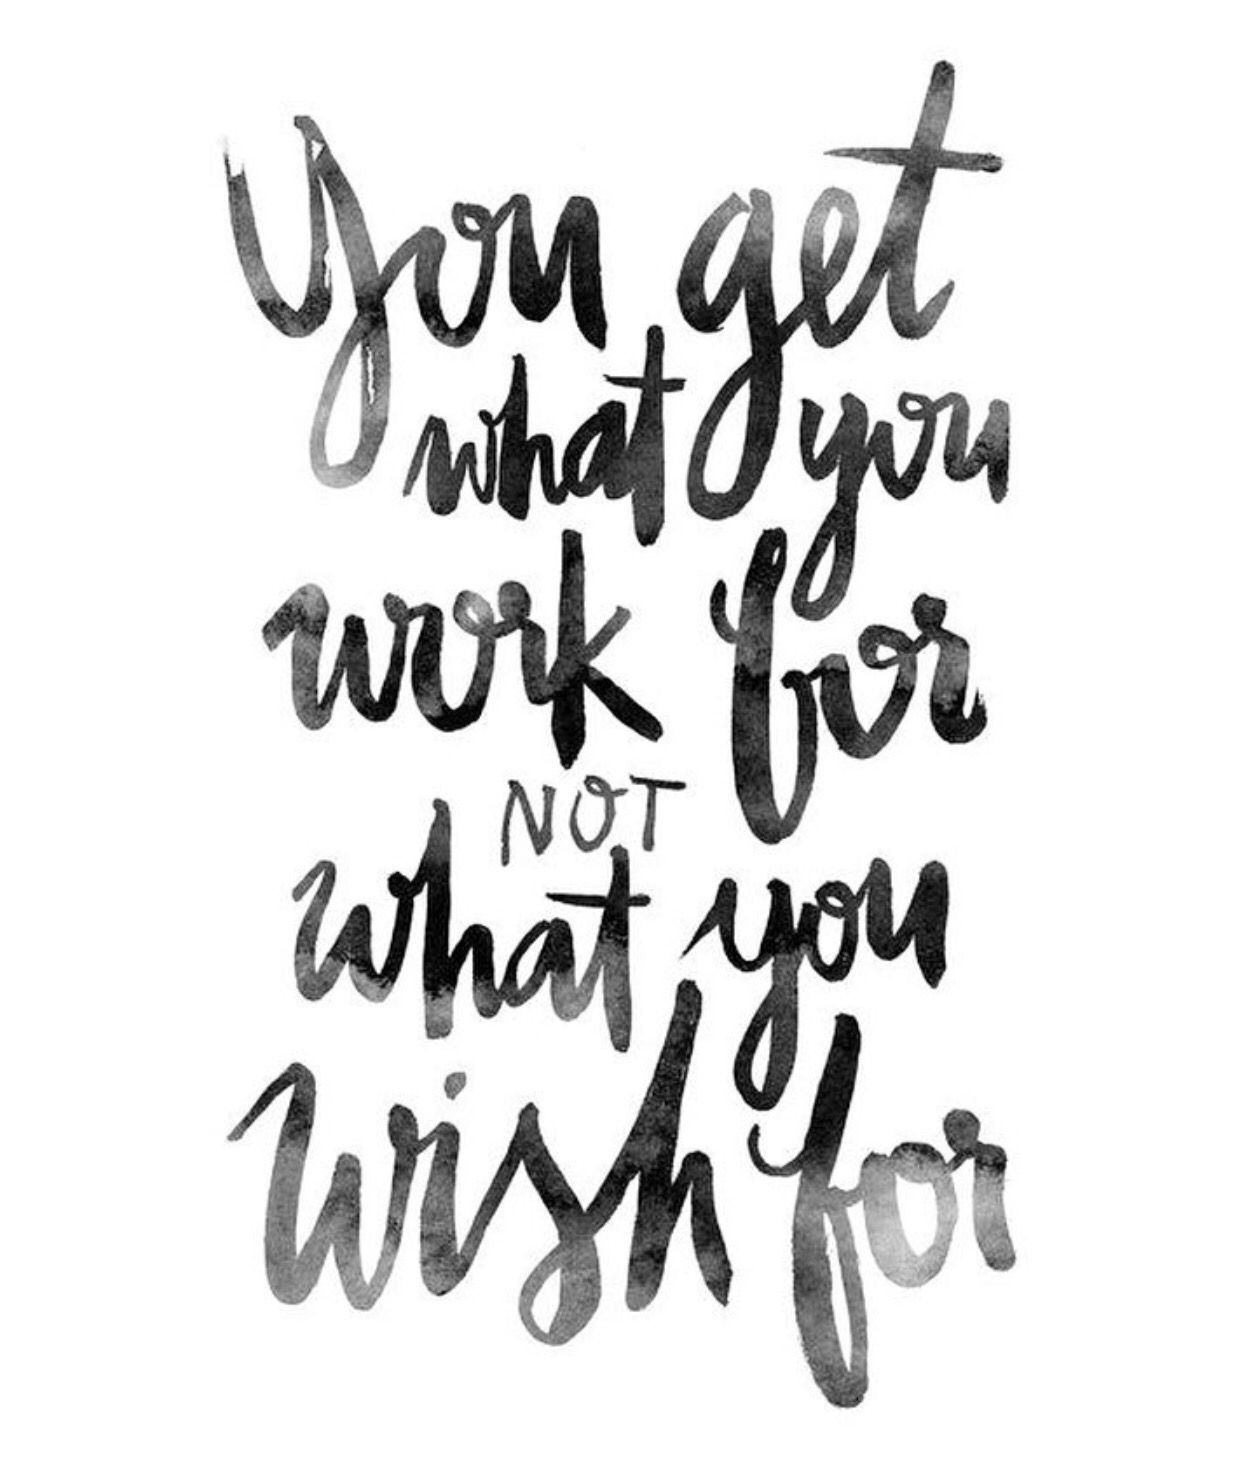 Inspiring Work Quotes Umm Noyou Don't Always Get What You Work Forthis Goes On The